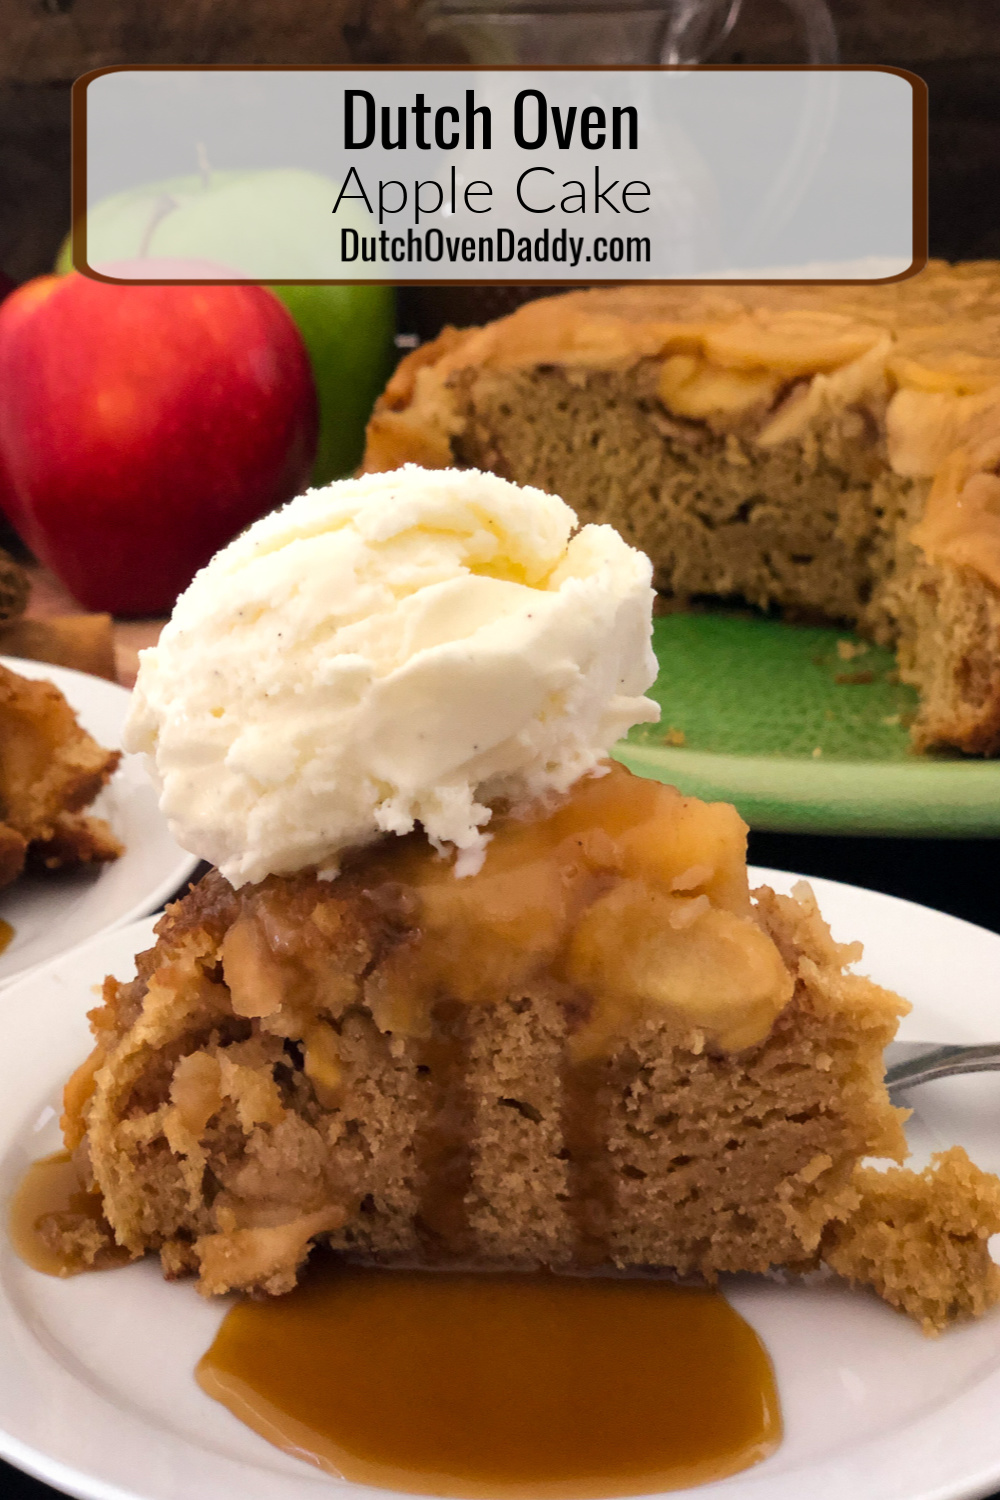 A slice of dutch oven apple cake with a scoop of vanilla bean ice cream and drizzled with homemade caramel sauce.